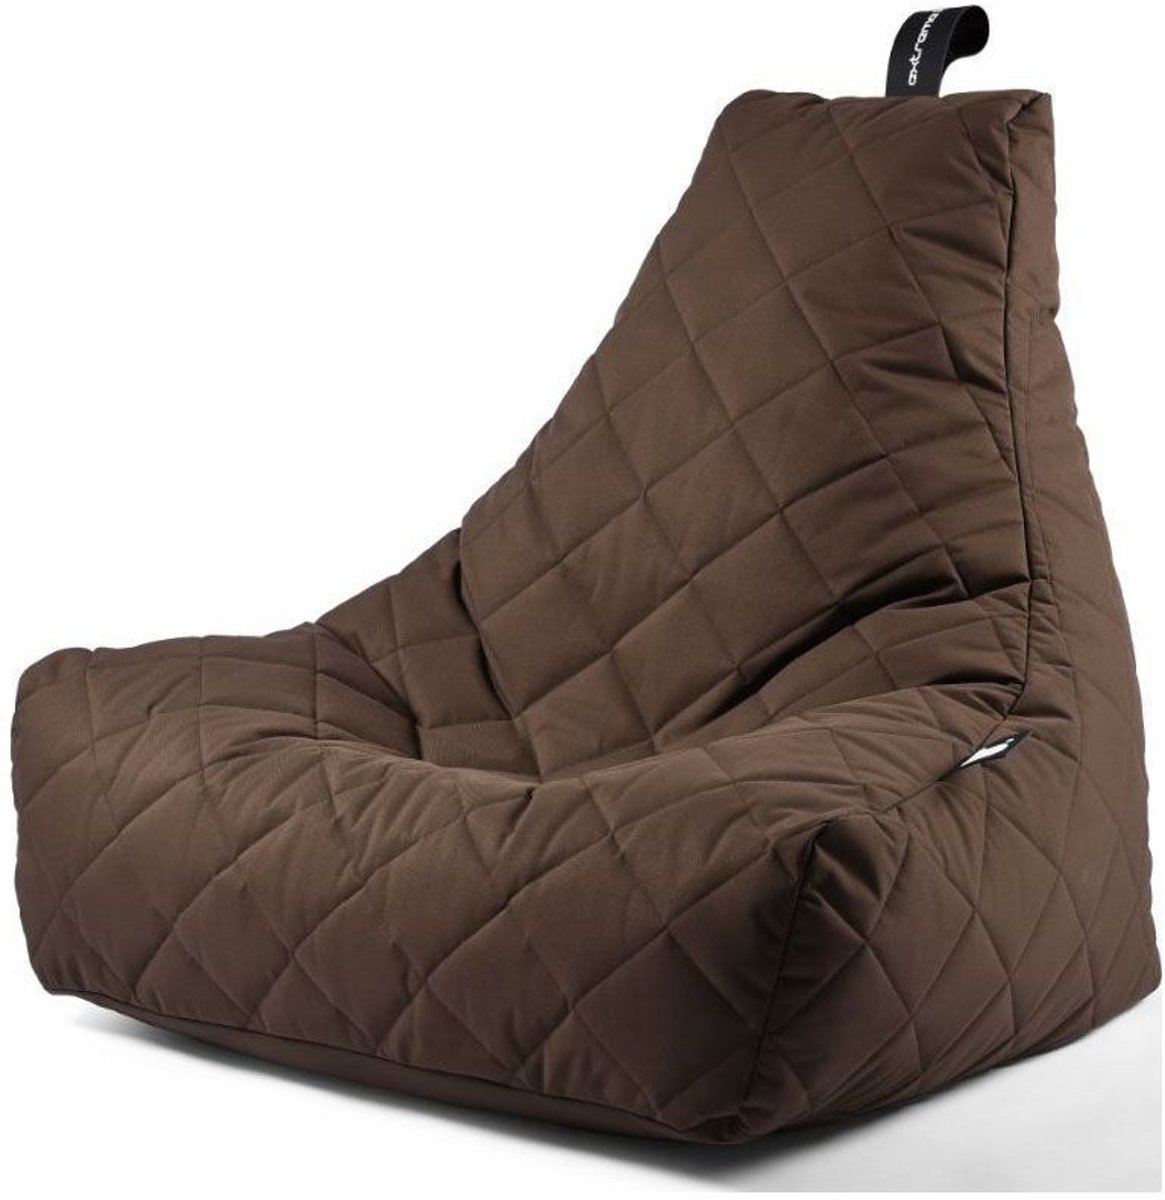 Extreme Lounging B-Bag Mighty-B Zitzak Quilted - Bruin kopen